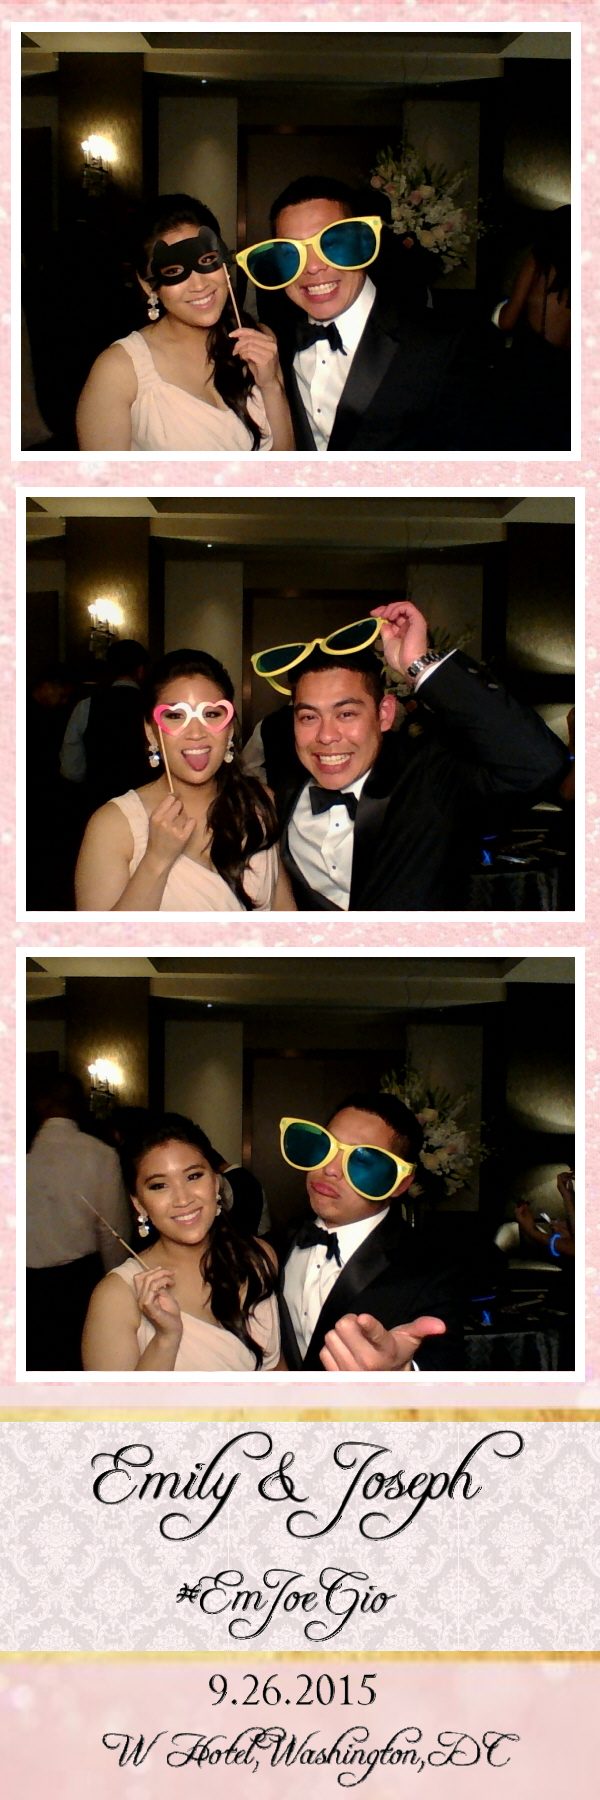 Guest House Events Photo Booth E&J (18).jpg